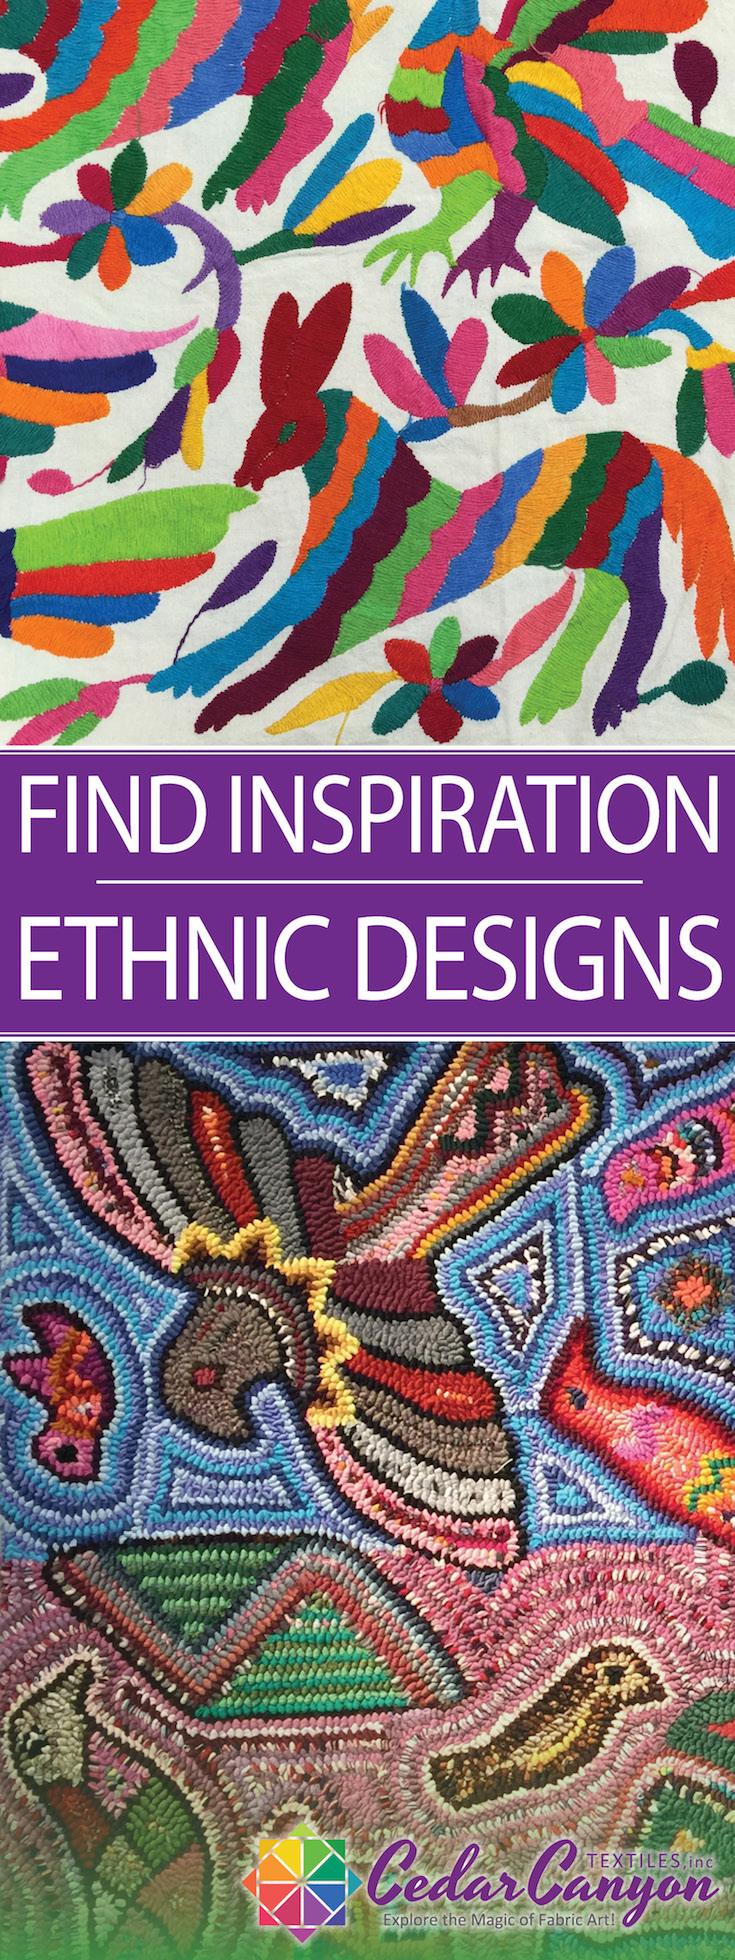 Ethnic-Designs-PIN